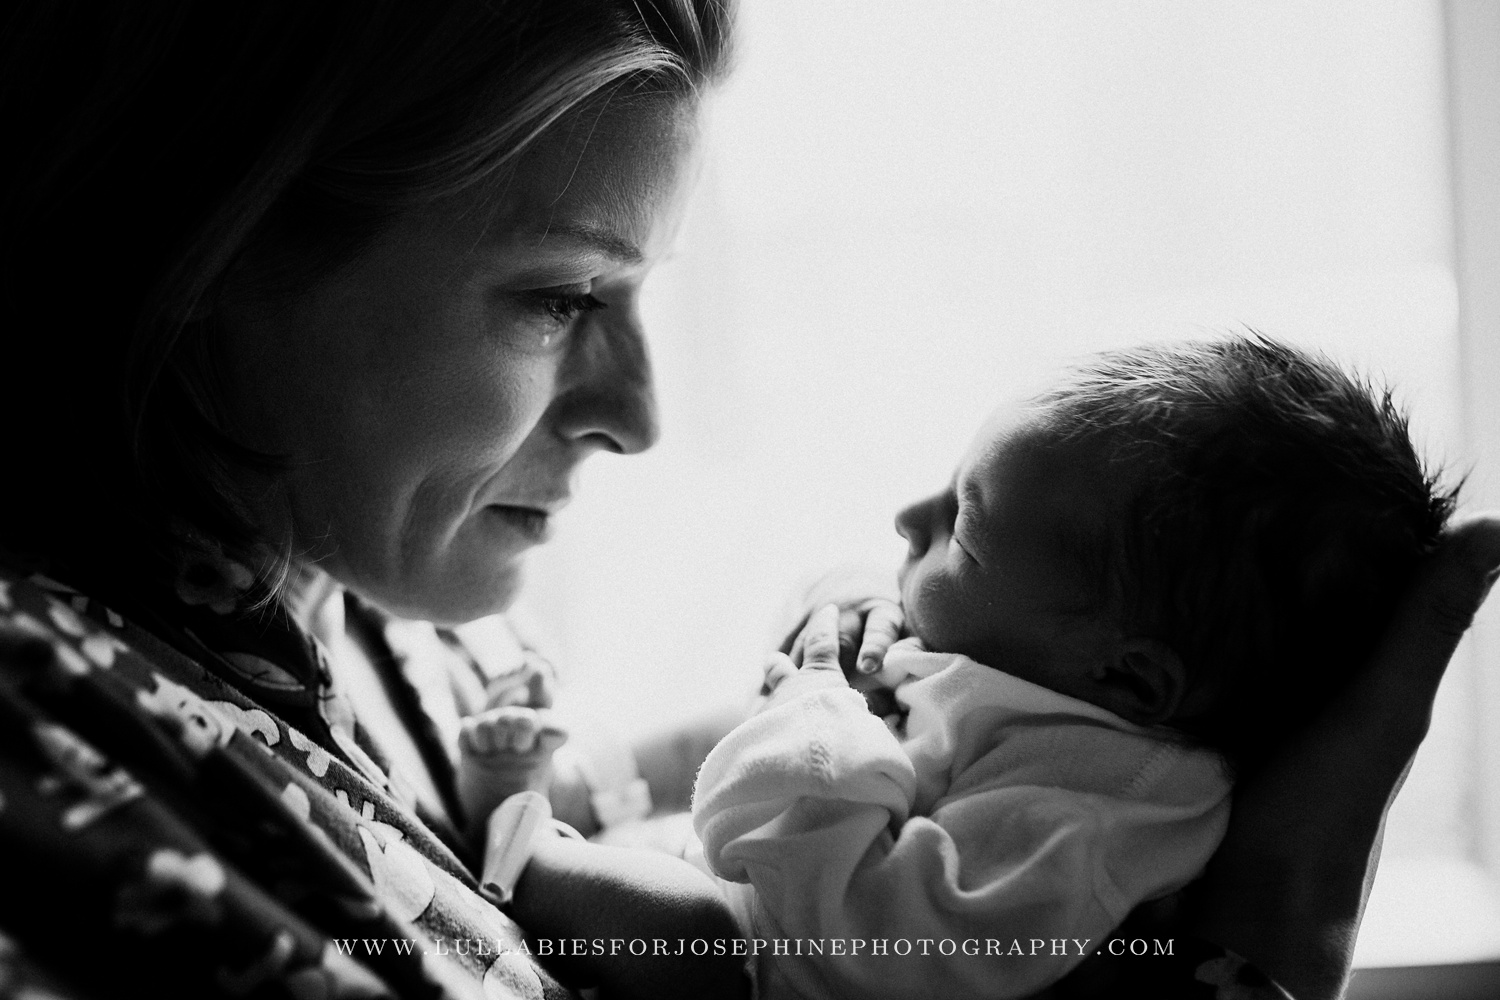 morristown-nj-newborn-photography-emotion-feeling-cry-tear-love-mom-baby